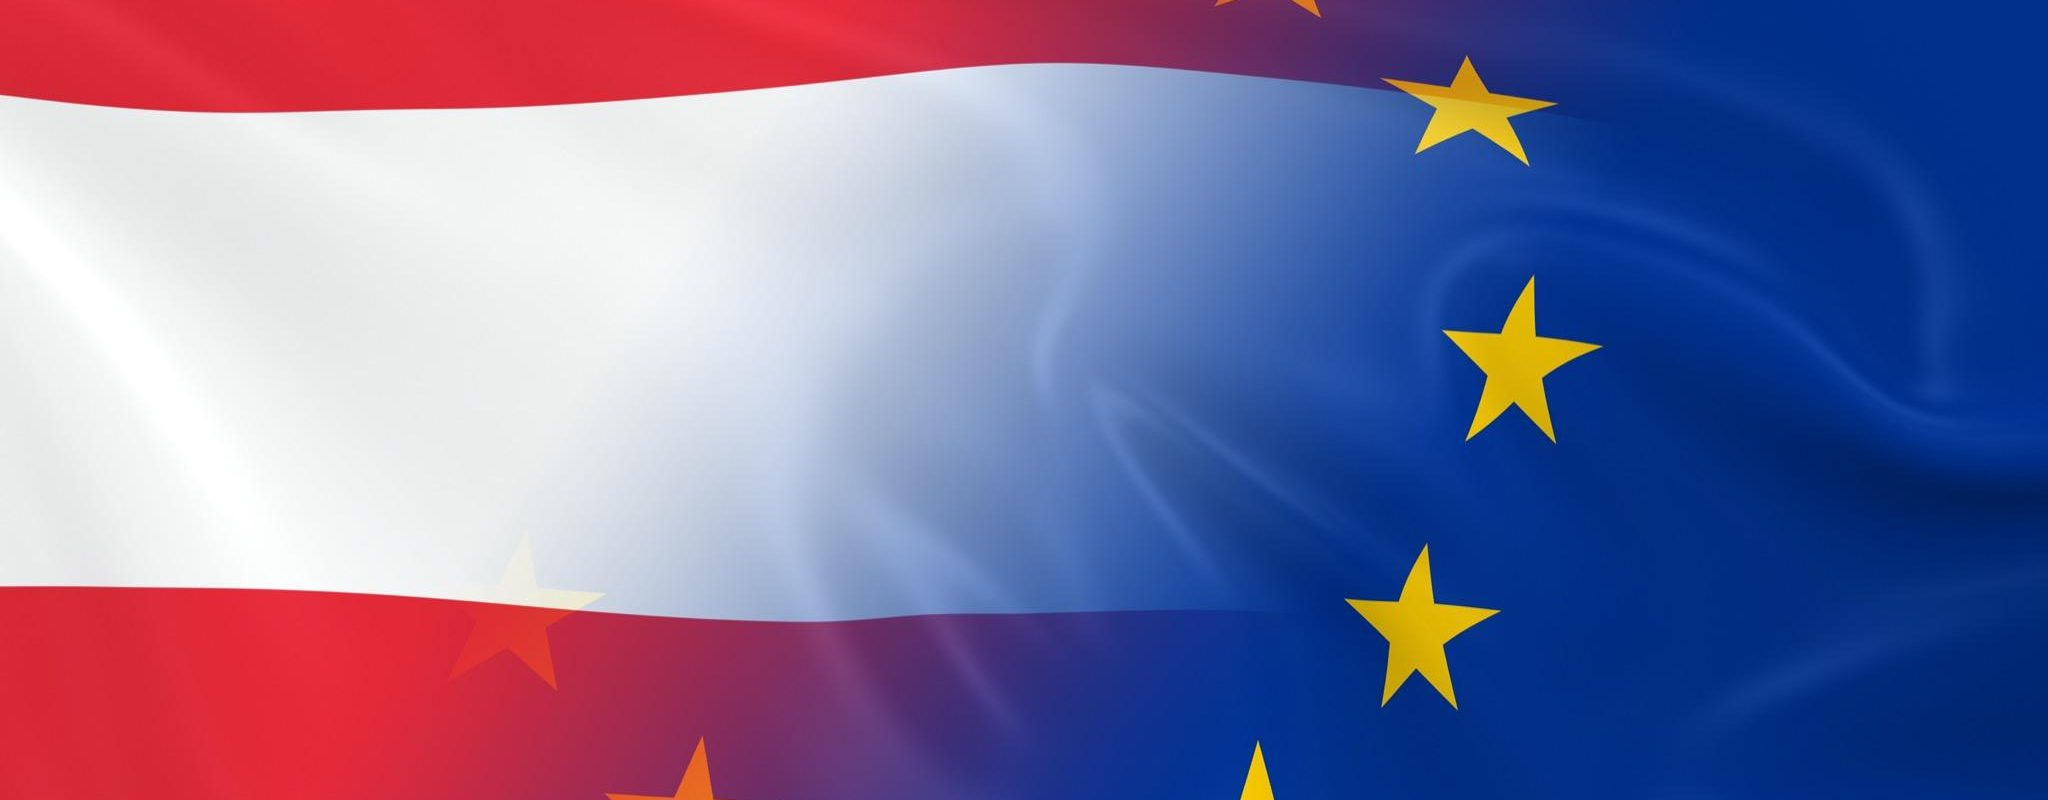 Austrian and European Relations Concept Image - Flags of Austria and the European Union Fading Together